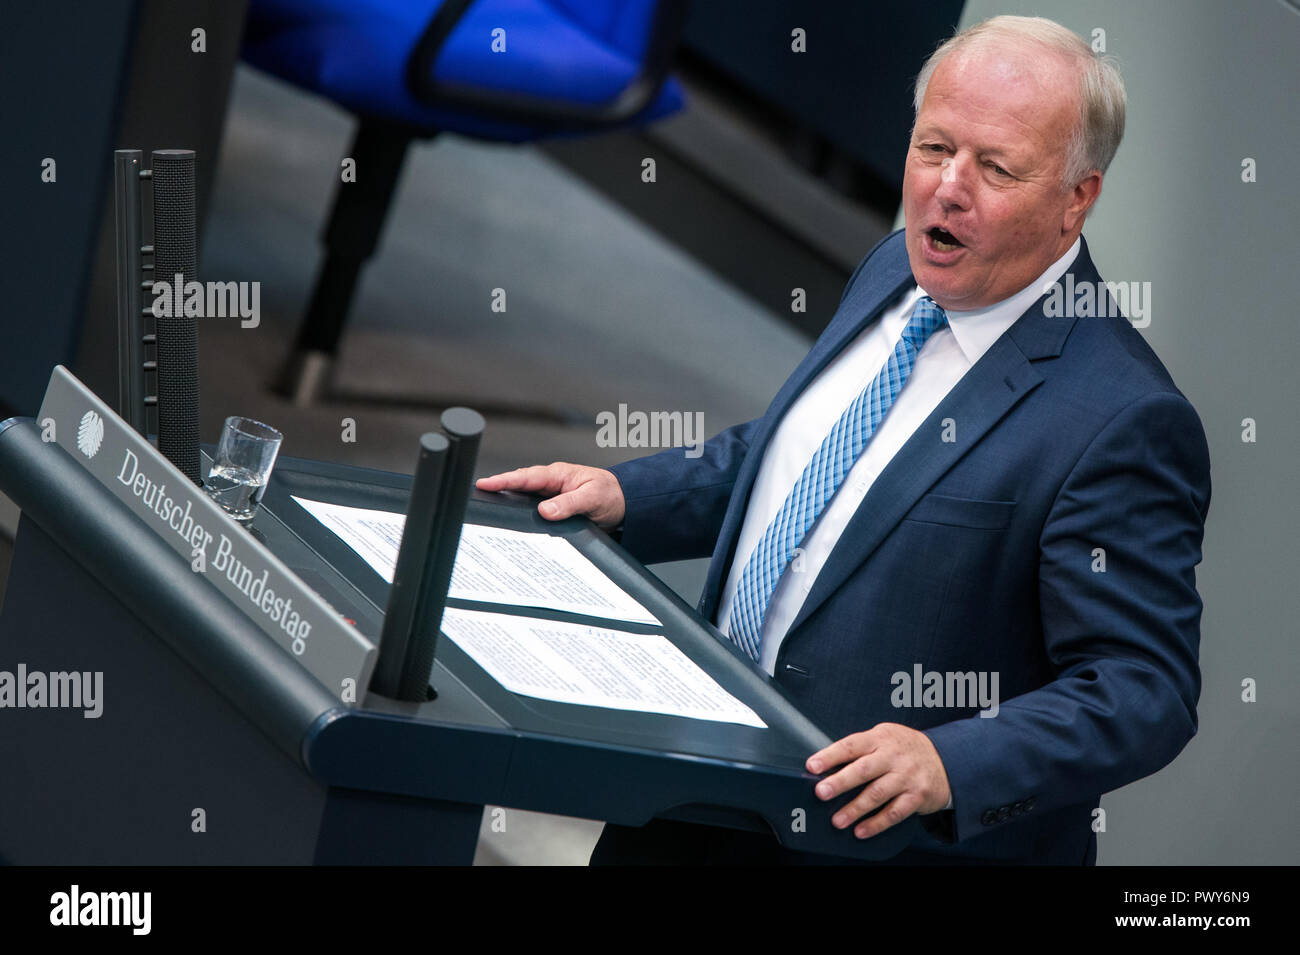 Berlin, Germany. 18th Oct, 2018. Peter Weiß, member of the Bundestag of the CDU/CSU parliamentary group, speaks in the Bundestag. Credit: Jens Büttner/dpa-Zentralbild/dpa/Alamy Live News - Stock Image